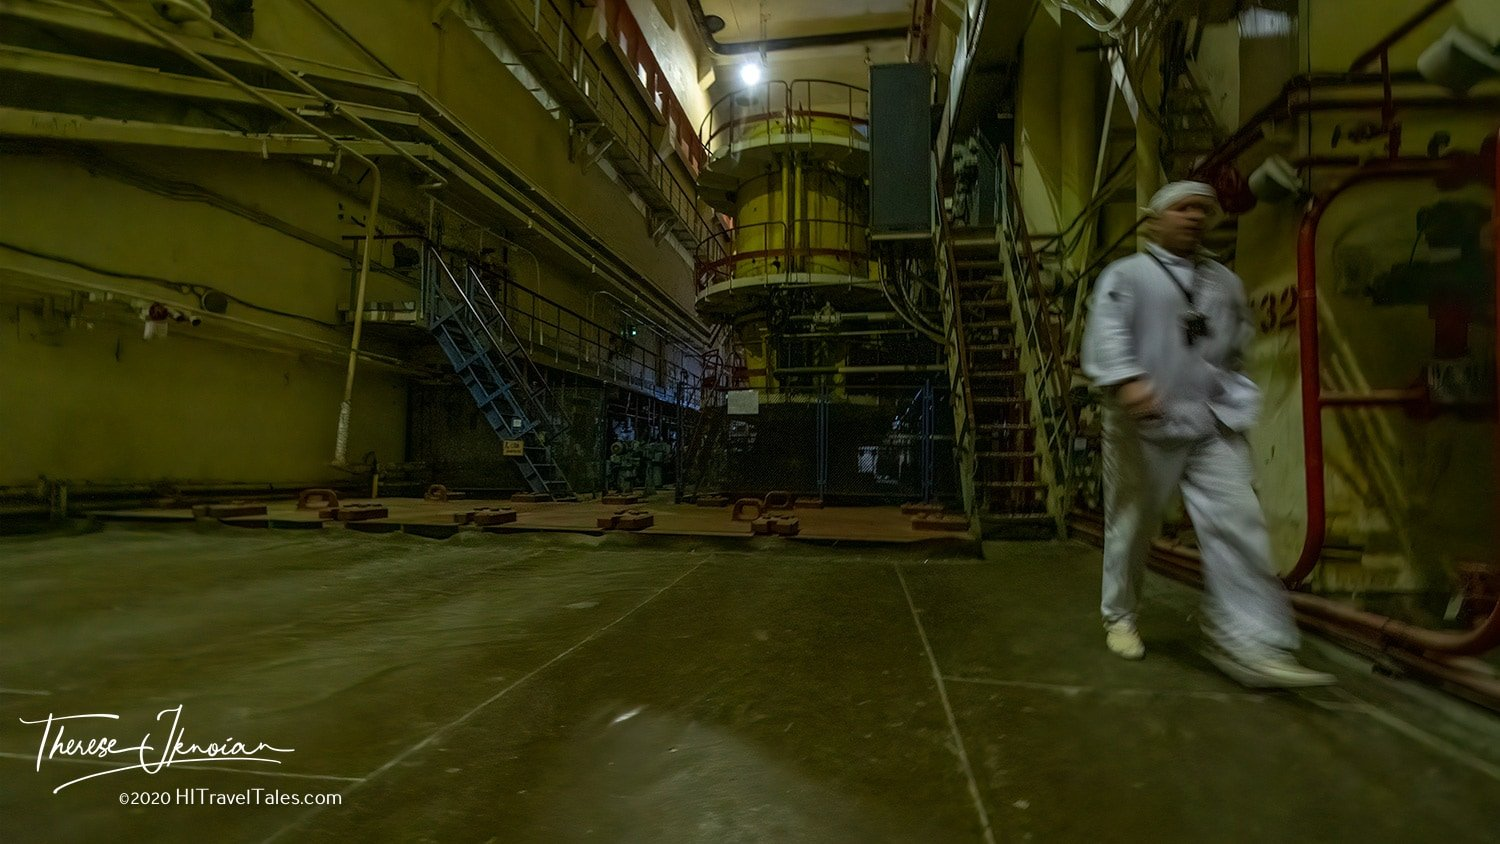 The Chernobyl plant remains staffed as it continues its slow decommissioning. The final unit of three reactors that did not explode was not shut down until 2000. Only Reactor 4 exploded. Here, a worker heads back to his station through a dark room of machinery.